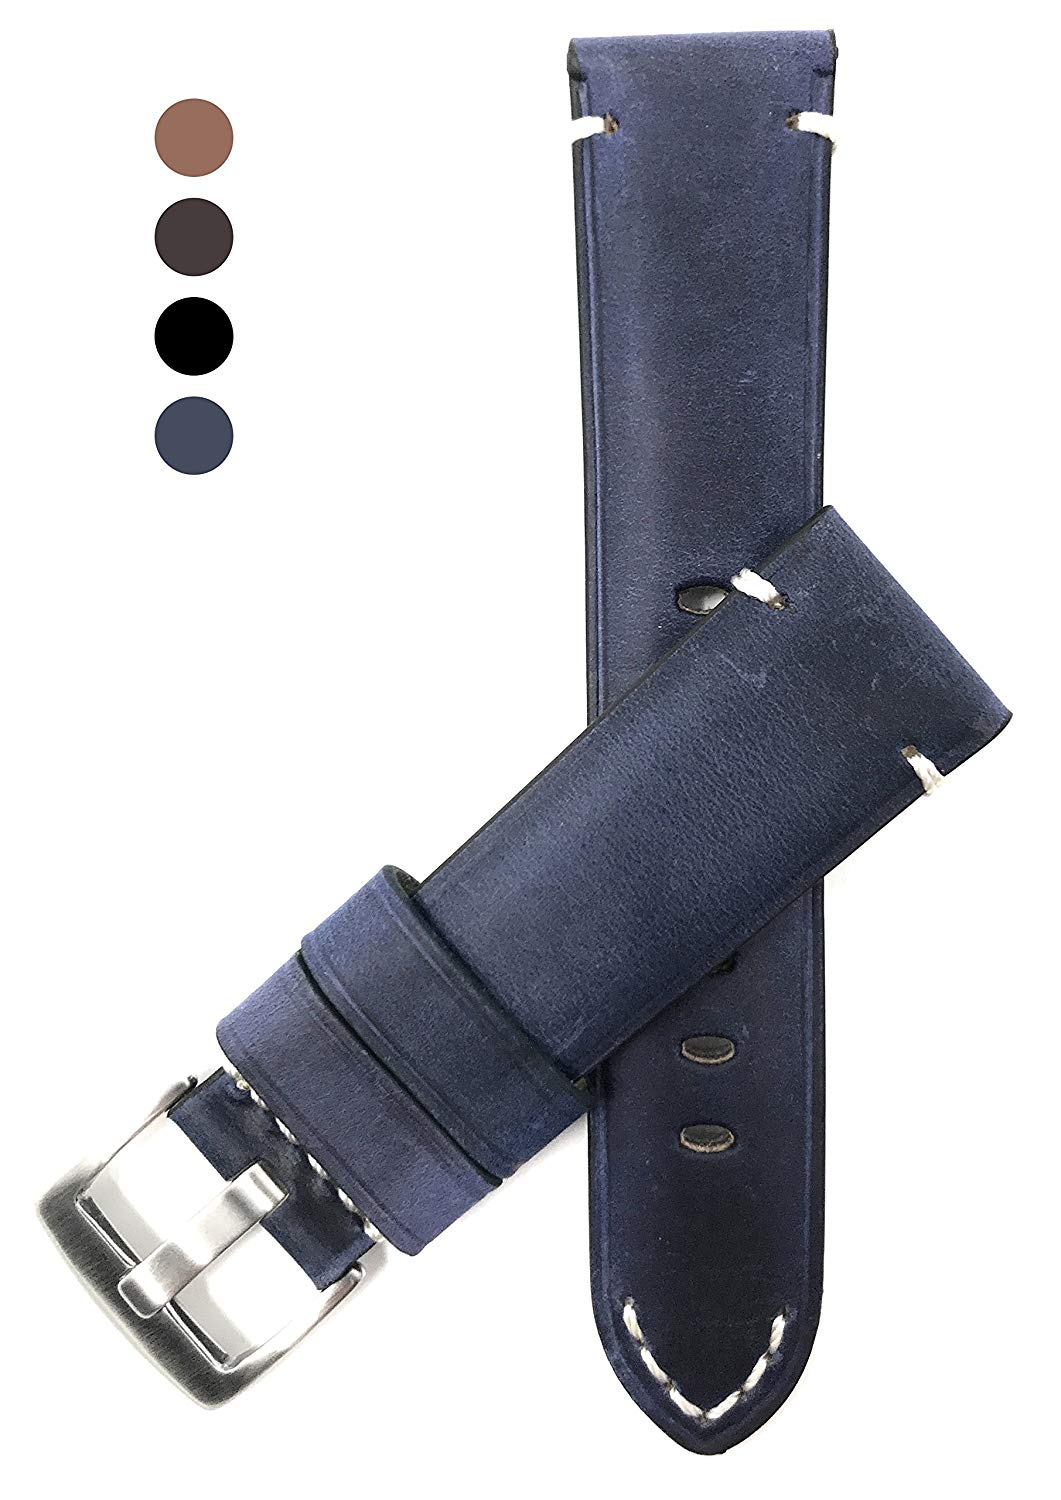 20mm to 24mm, Vintage Watch Band Strap, Genuine Leather, Black, Brown, Tan & Blue, White Stitch, Stainless Buckle